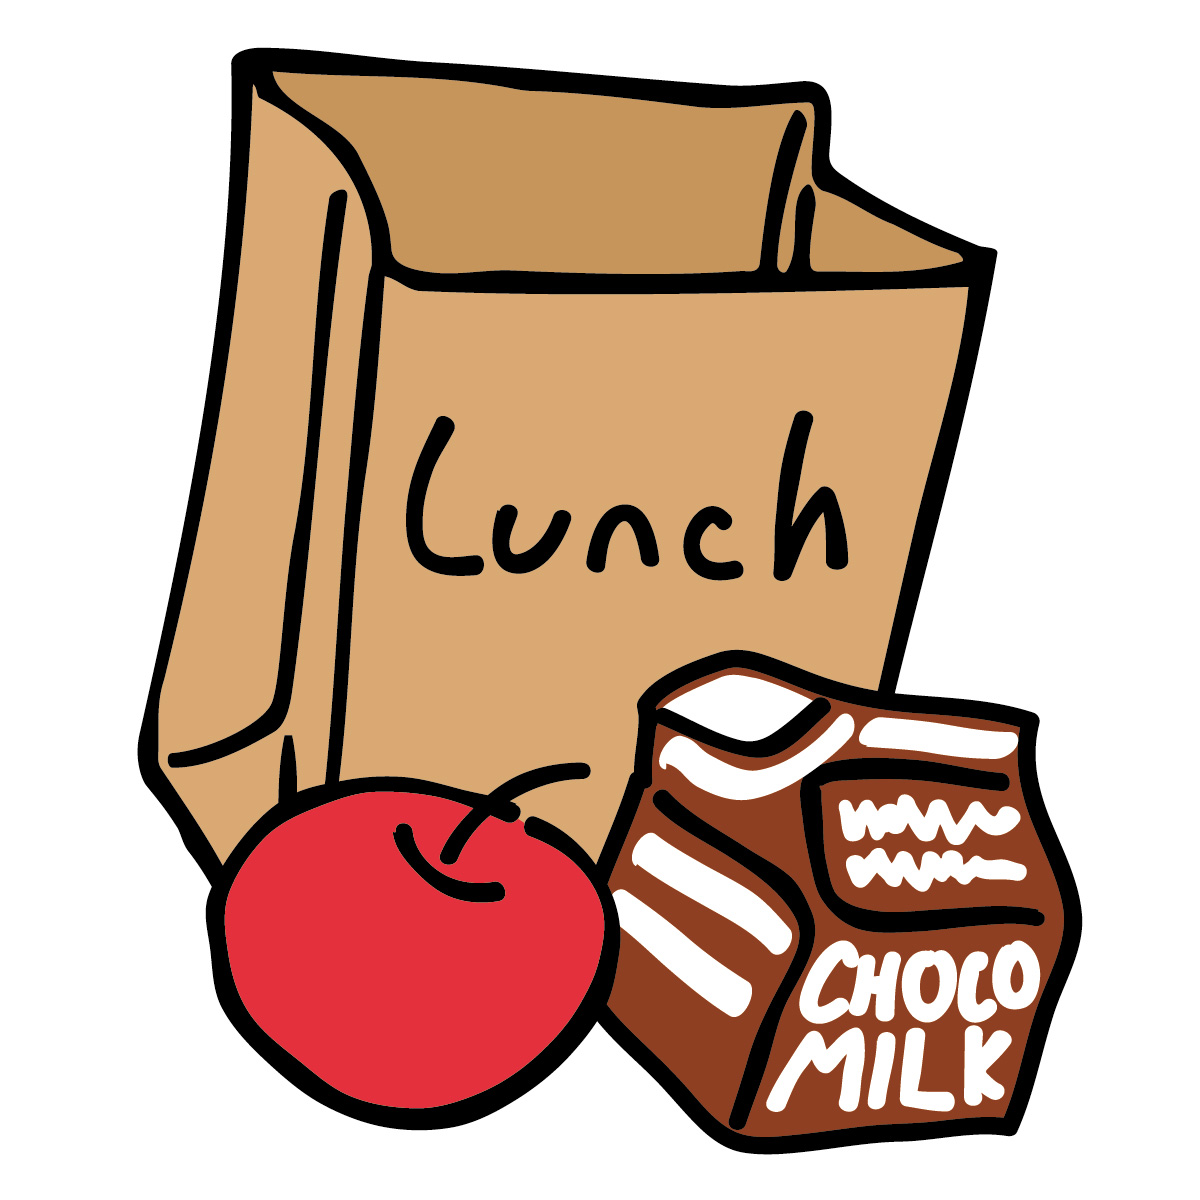 Lunch clipart #7, Download drawings